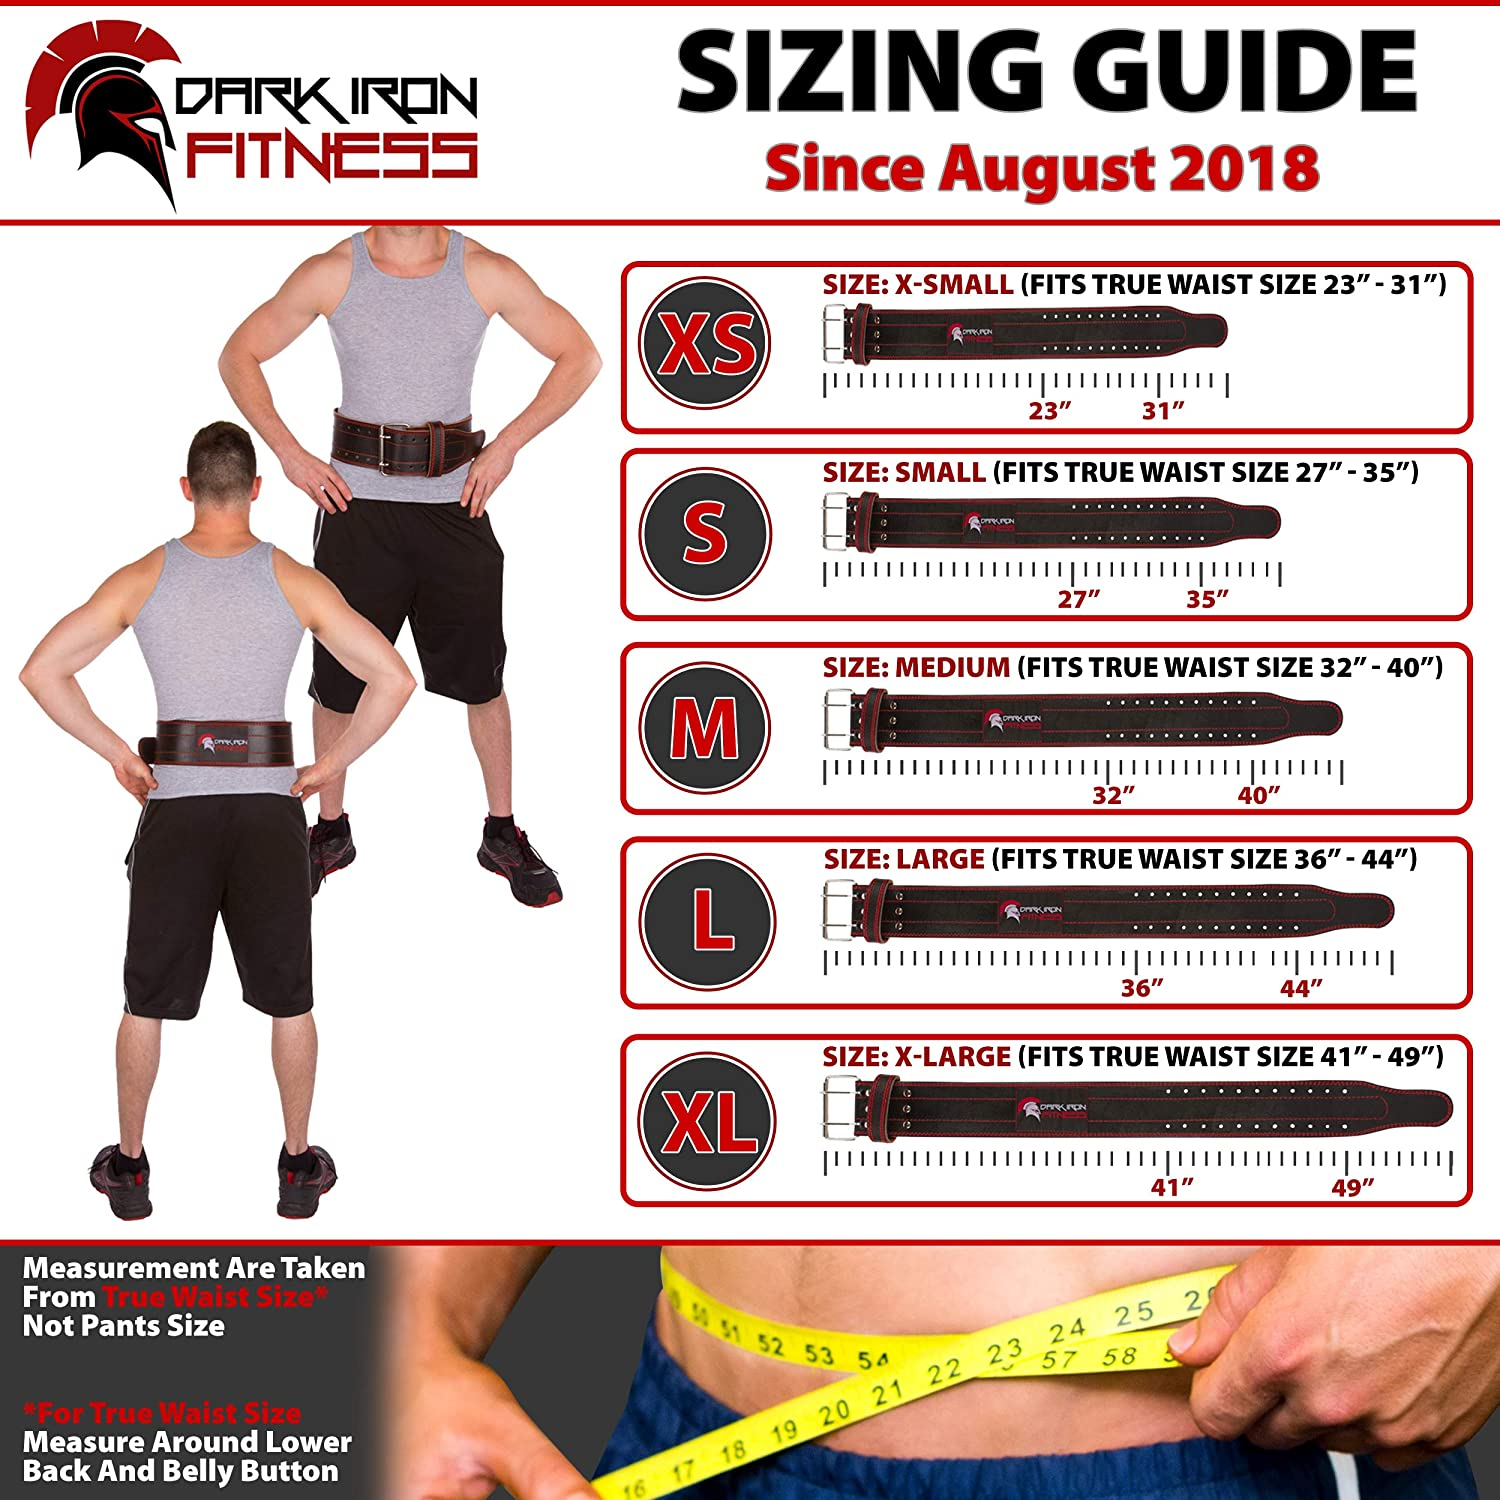 Leather Belt Thickness and The Belt You Should Buy - Dark Iron Fitness Sizing Guide